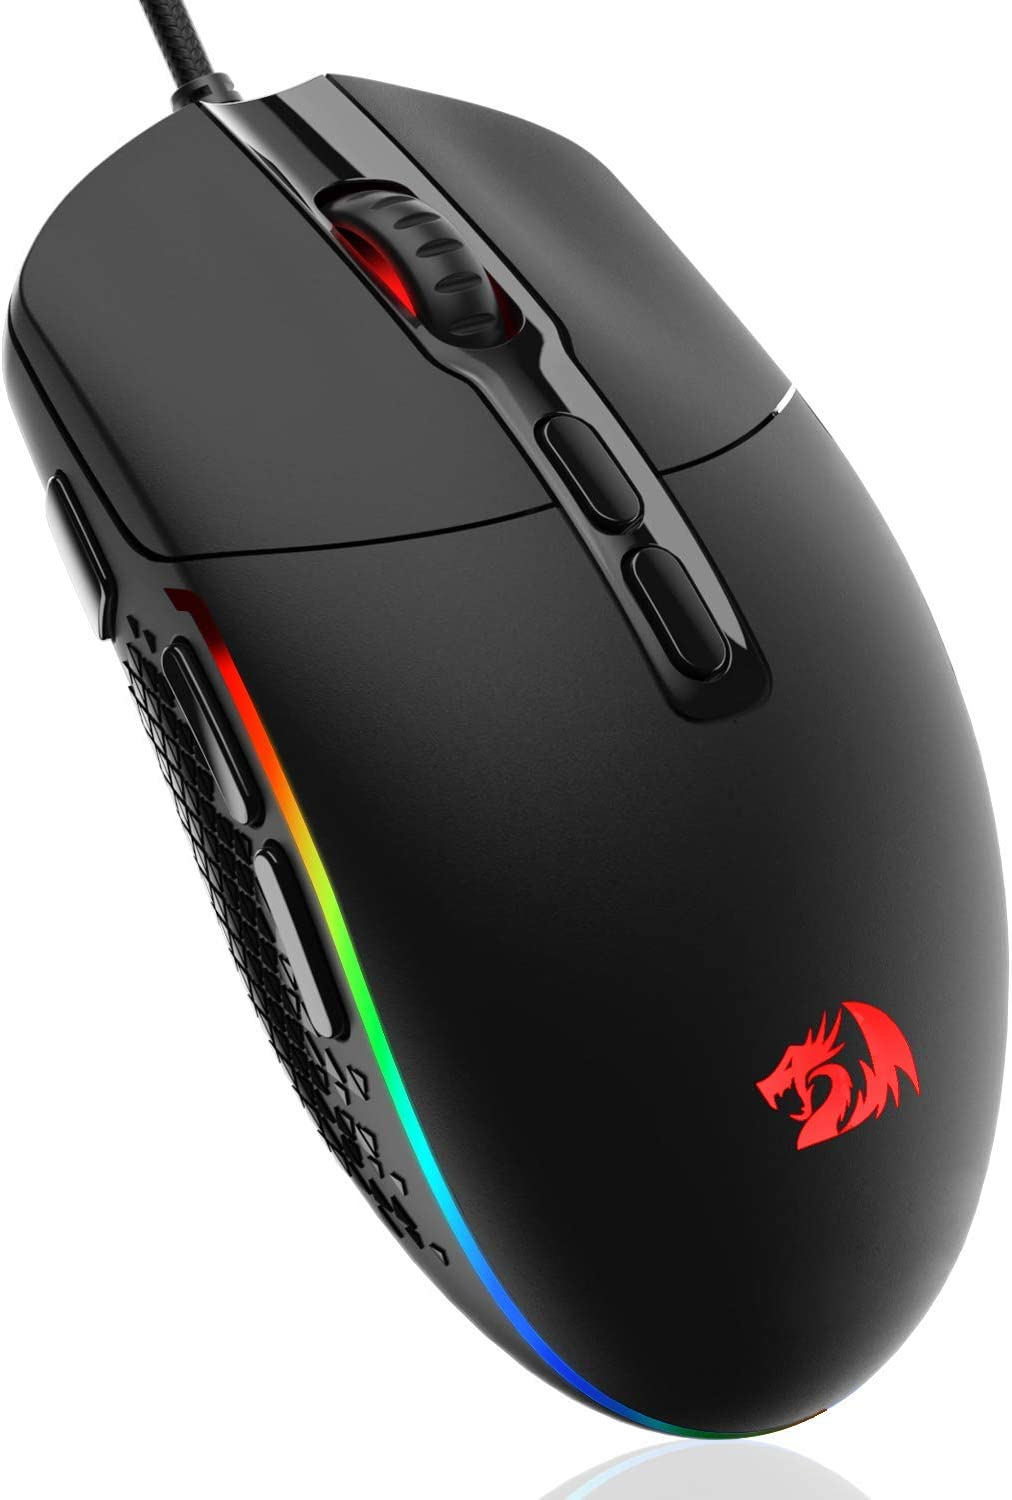 specialty shop Redragon M719 Invader Wired Optical OFFicial Mouse 7 Programmable Gaming